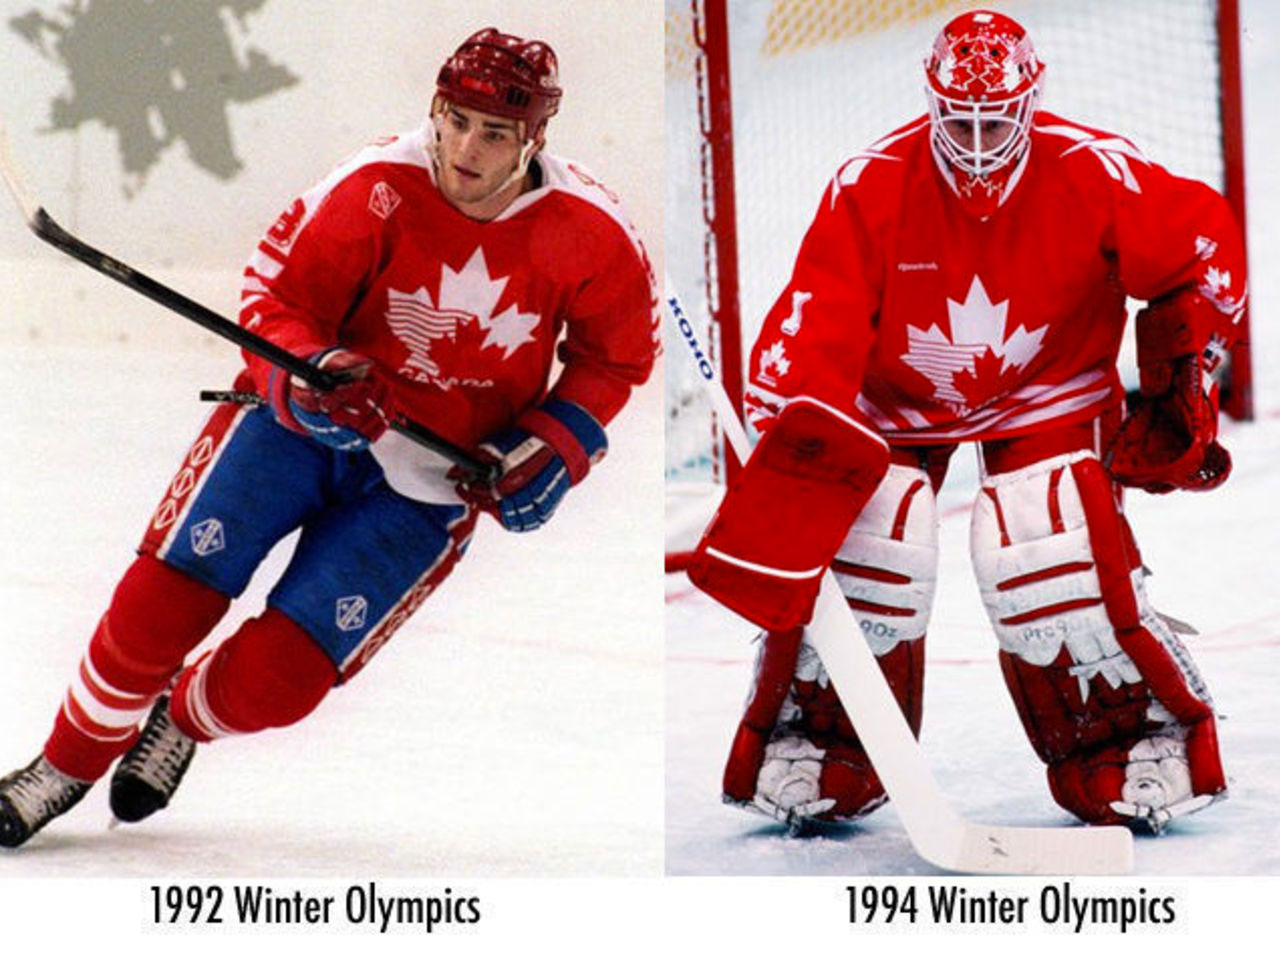 Tackla Reebok Logos On Hockey Jerseys 1992 1994 Olympics